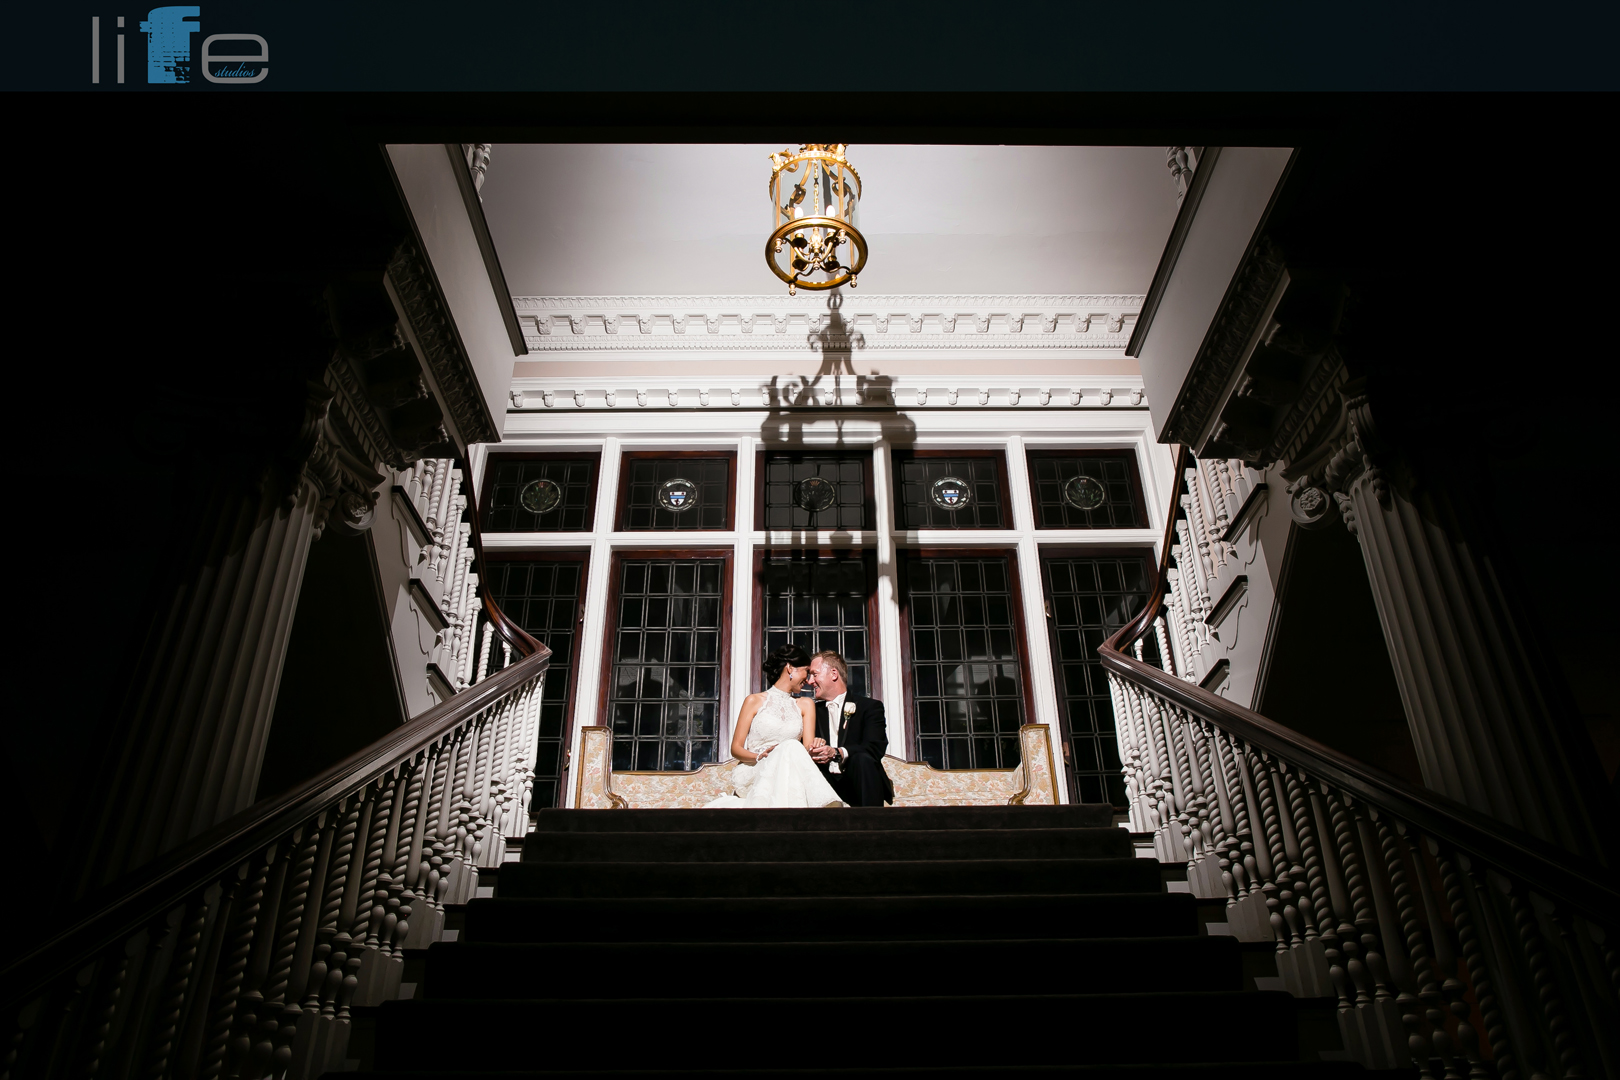 Wedding Photography Audrey and Walter James Bond Wedding at Hycroft Manor by Vancouver photographer Life Studios Inc.